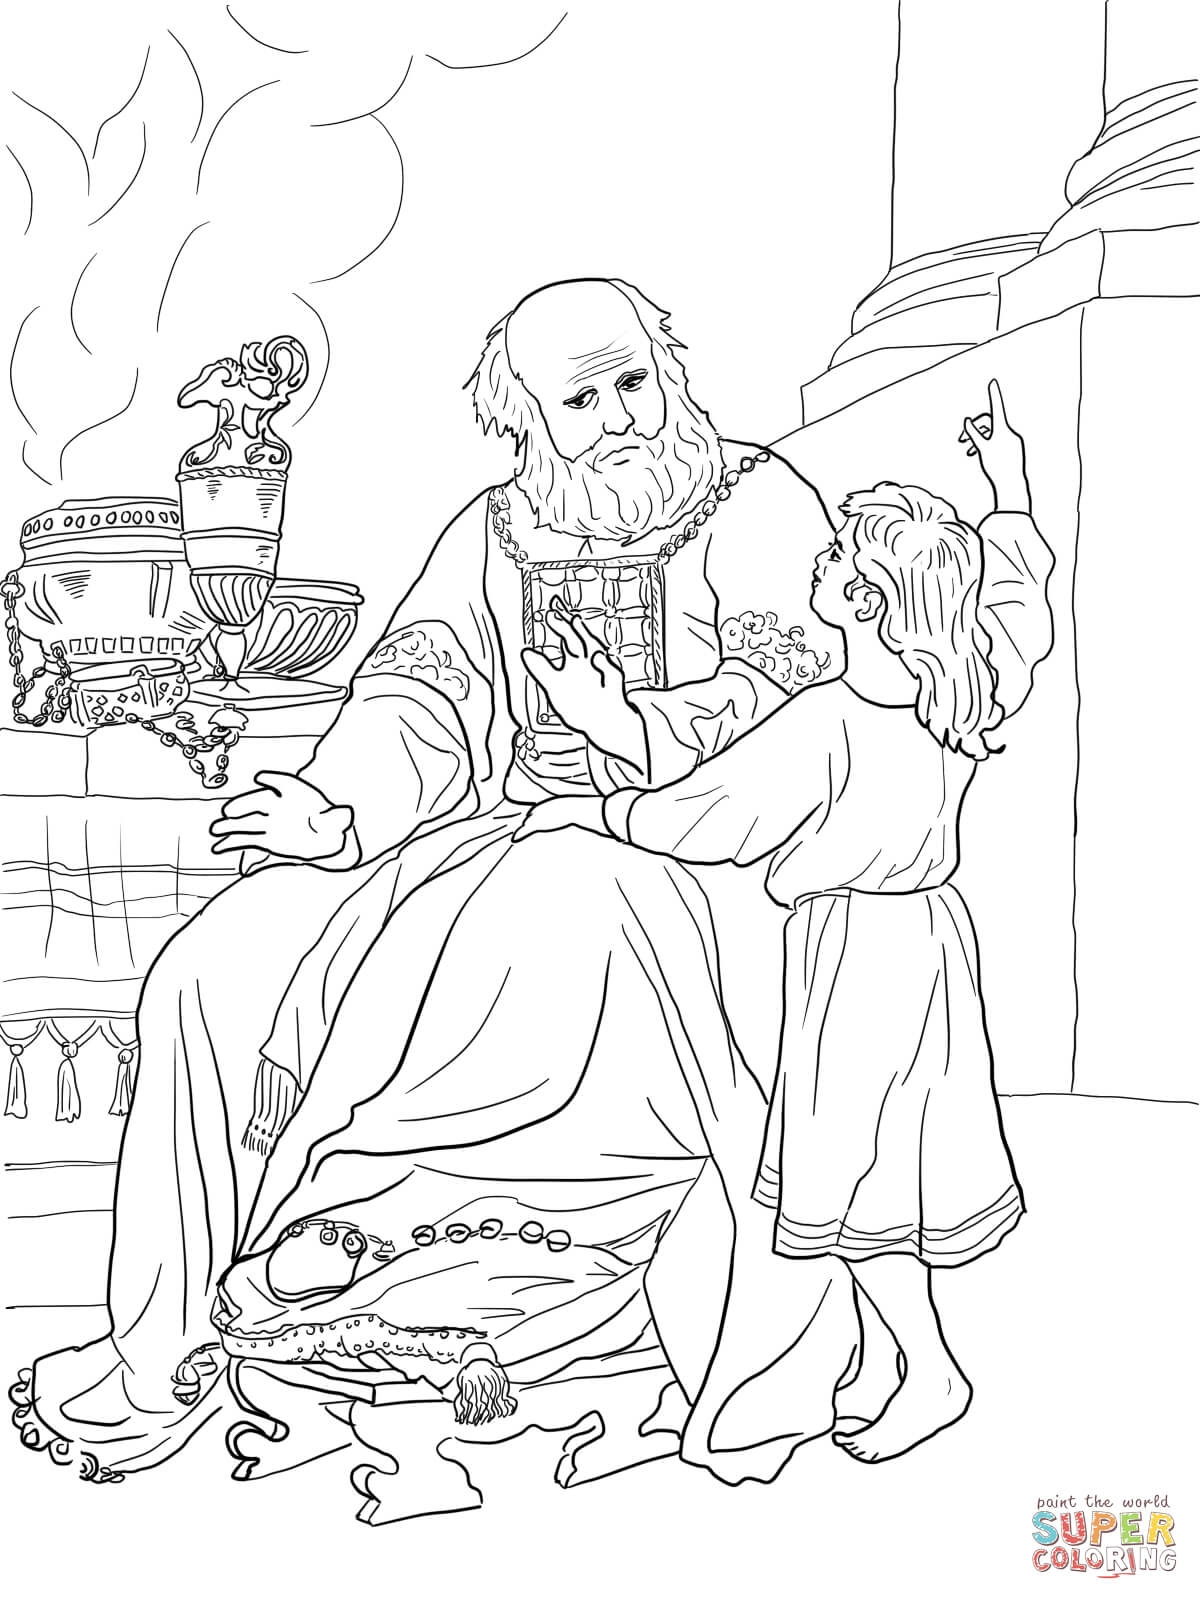 25 Christopher Columbus Coloring Page Collections | FREE ...